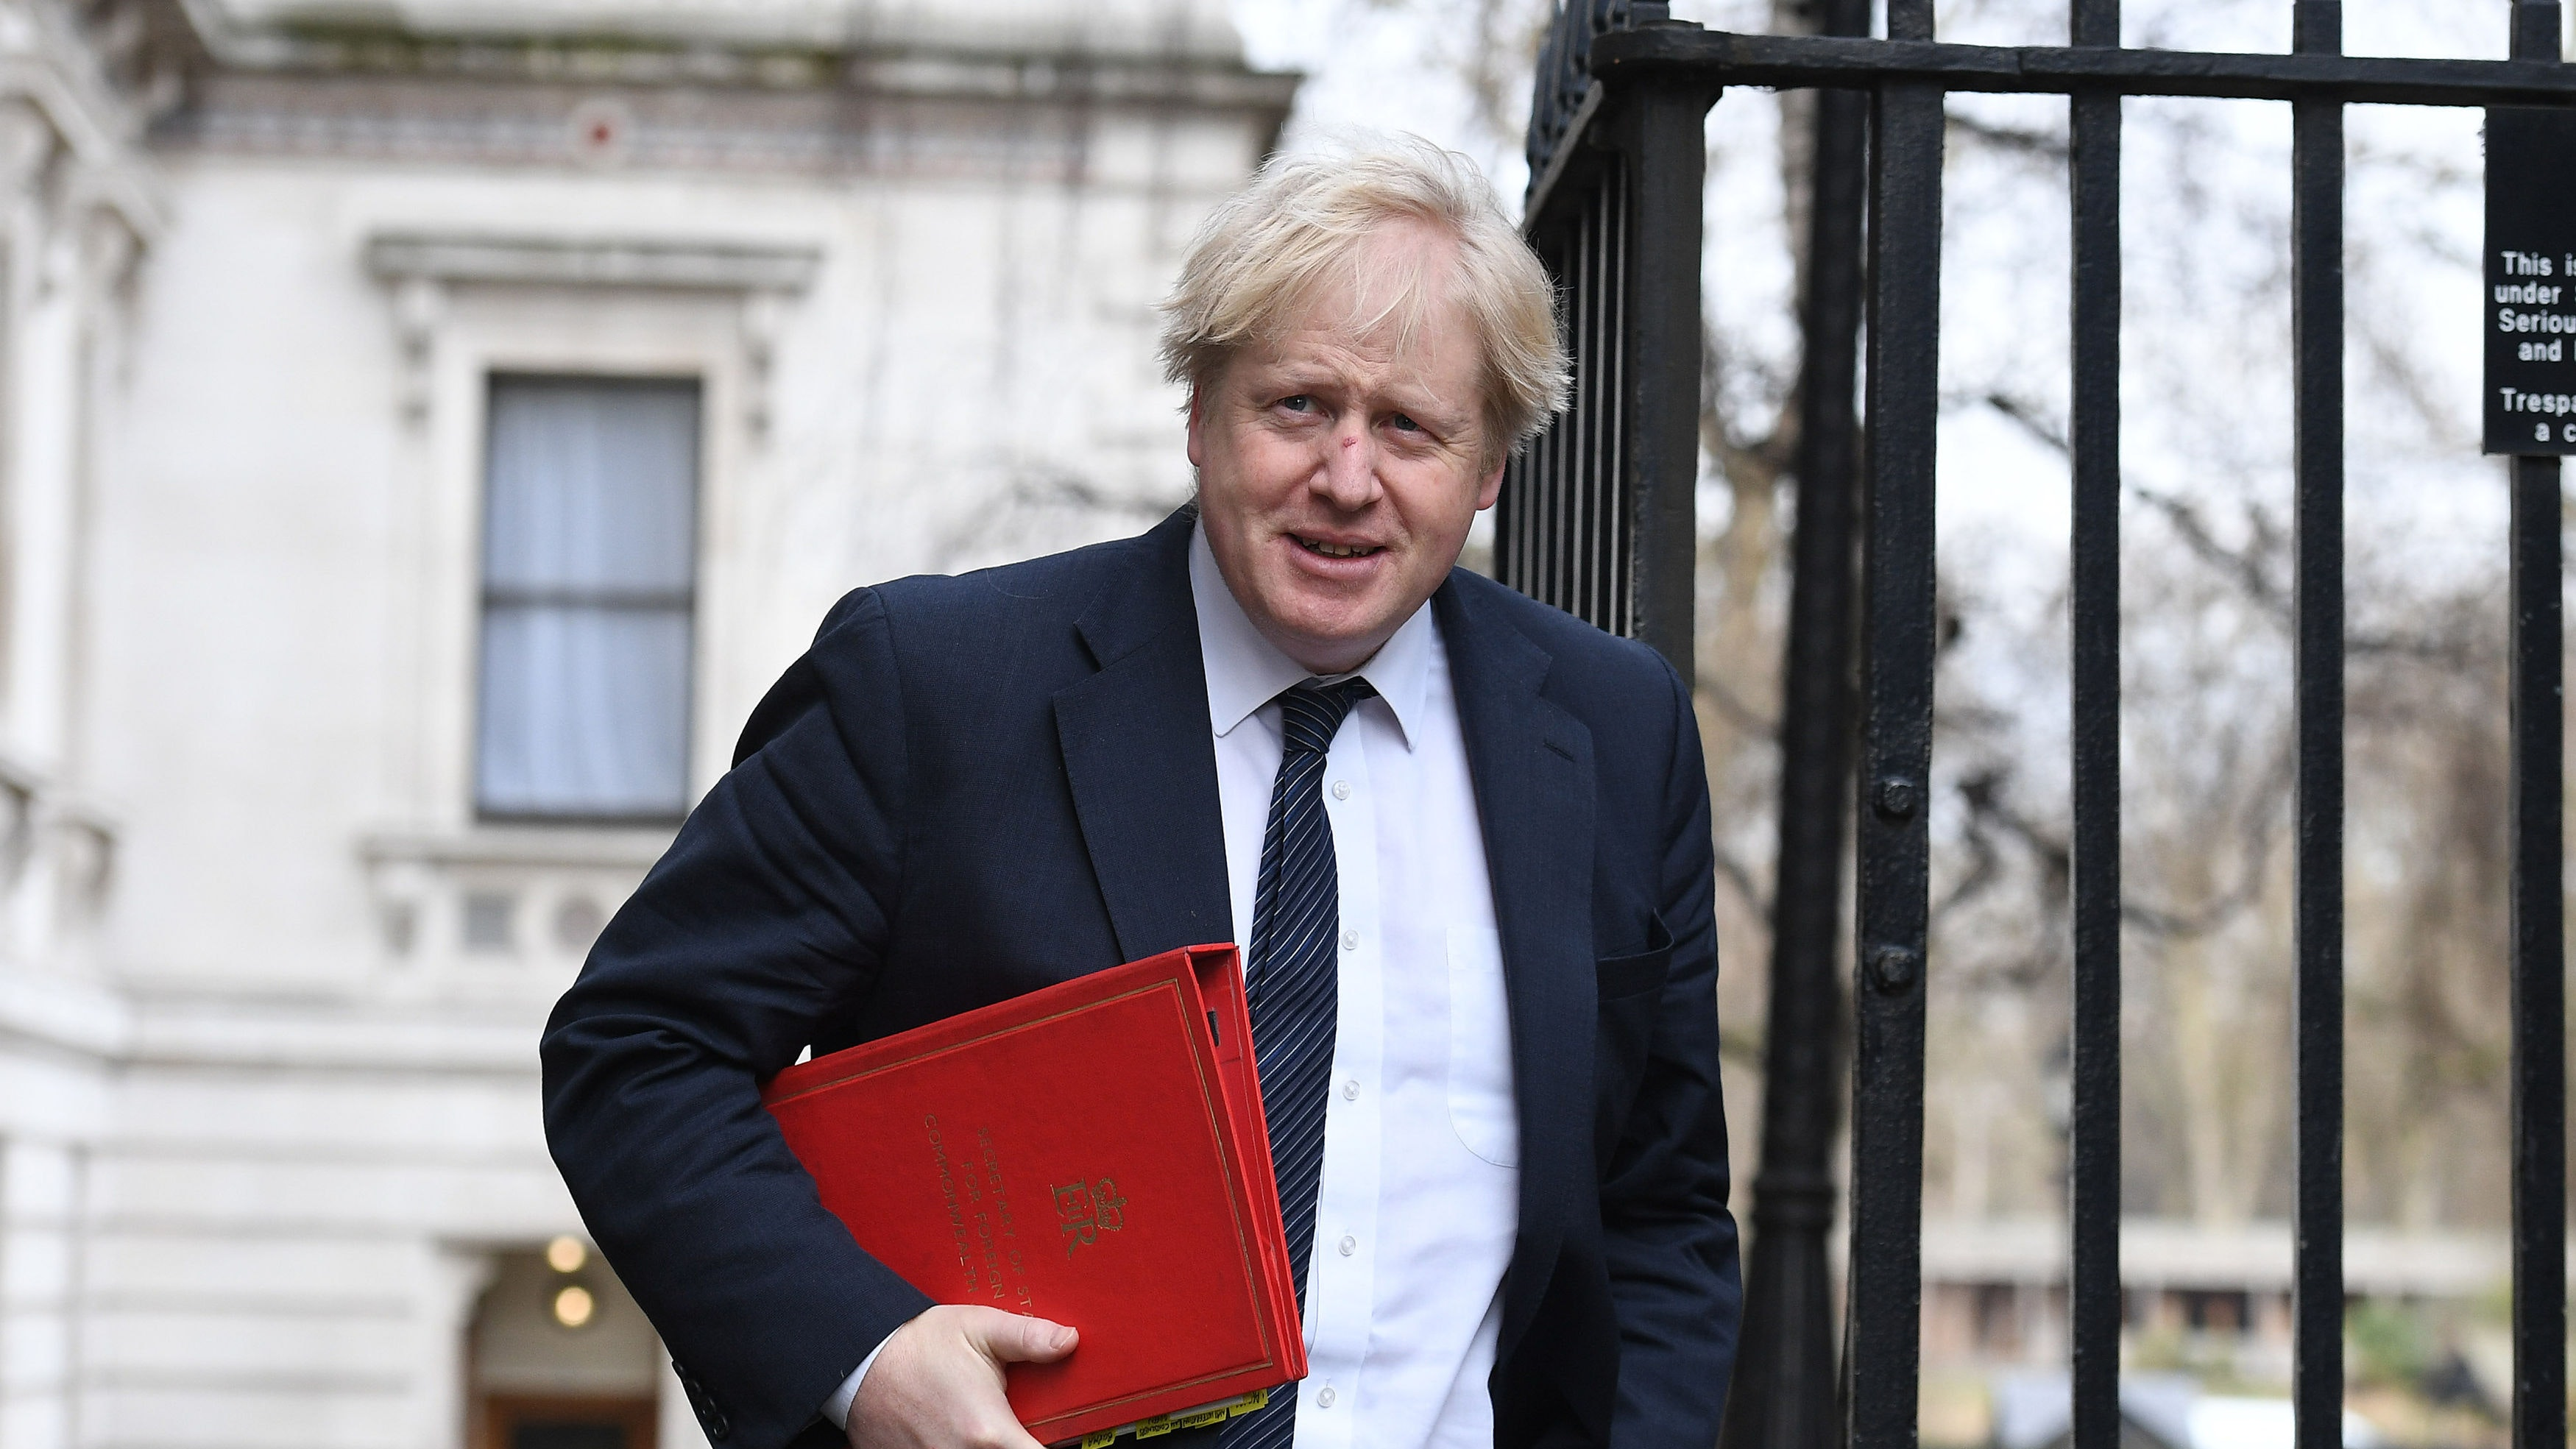 Boris Johnson in 'complete conformity' with undecided Brexit plan